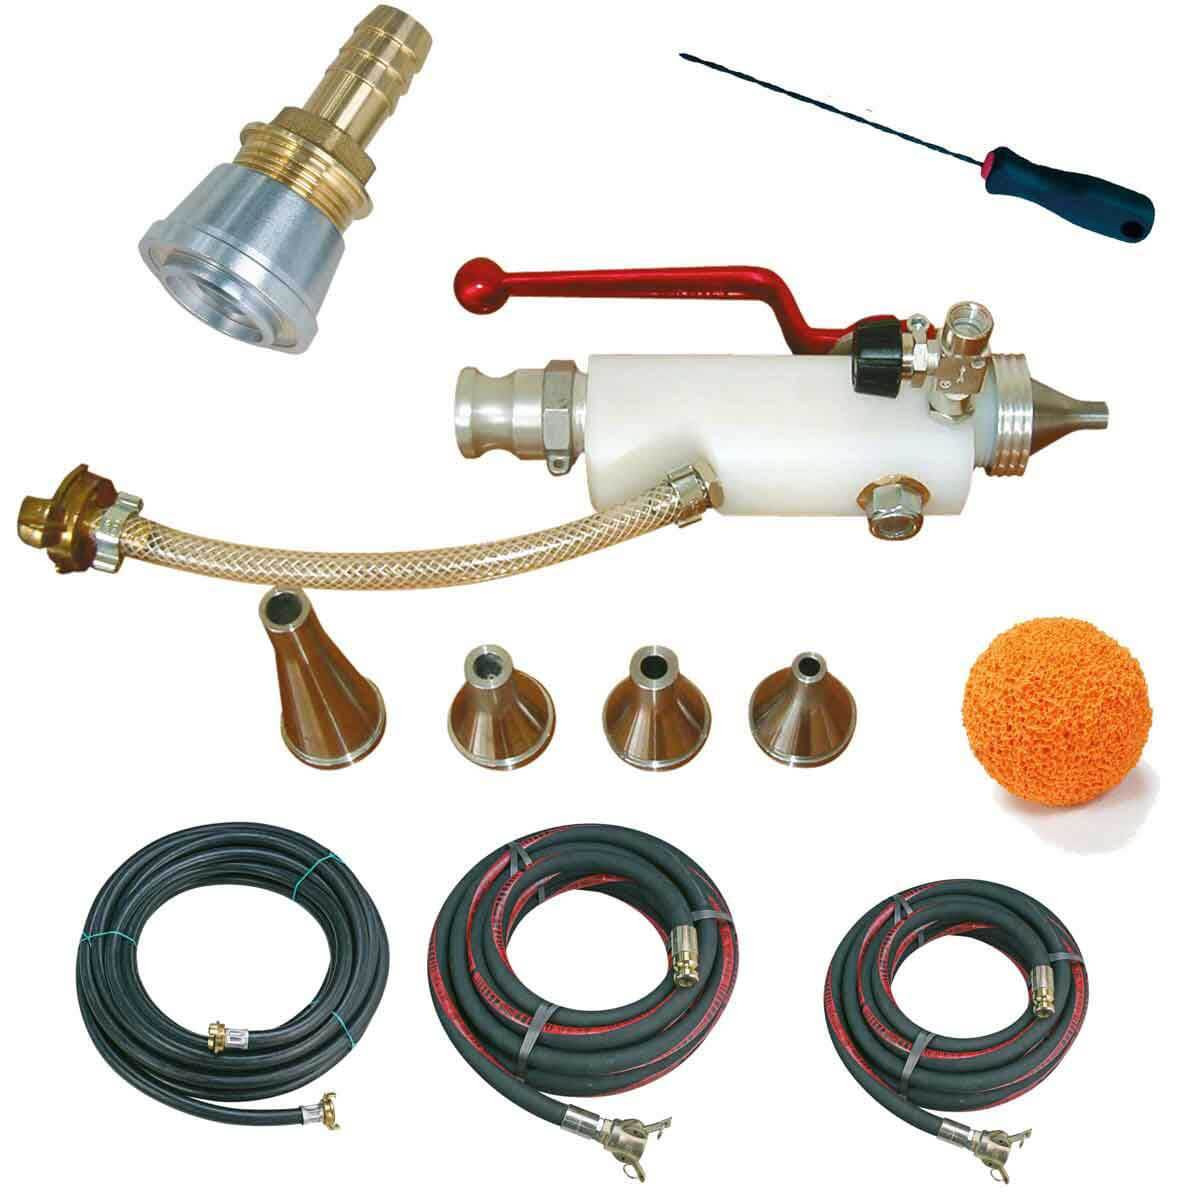 1107010 Imer Light Materials Spray Gun Kit